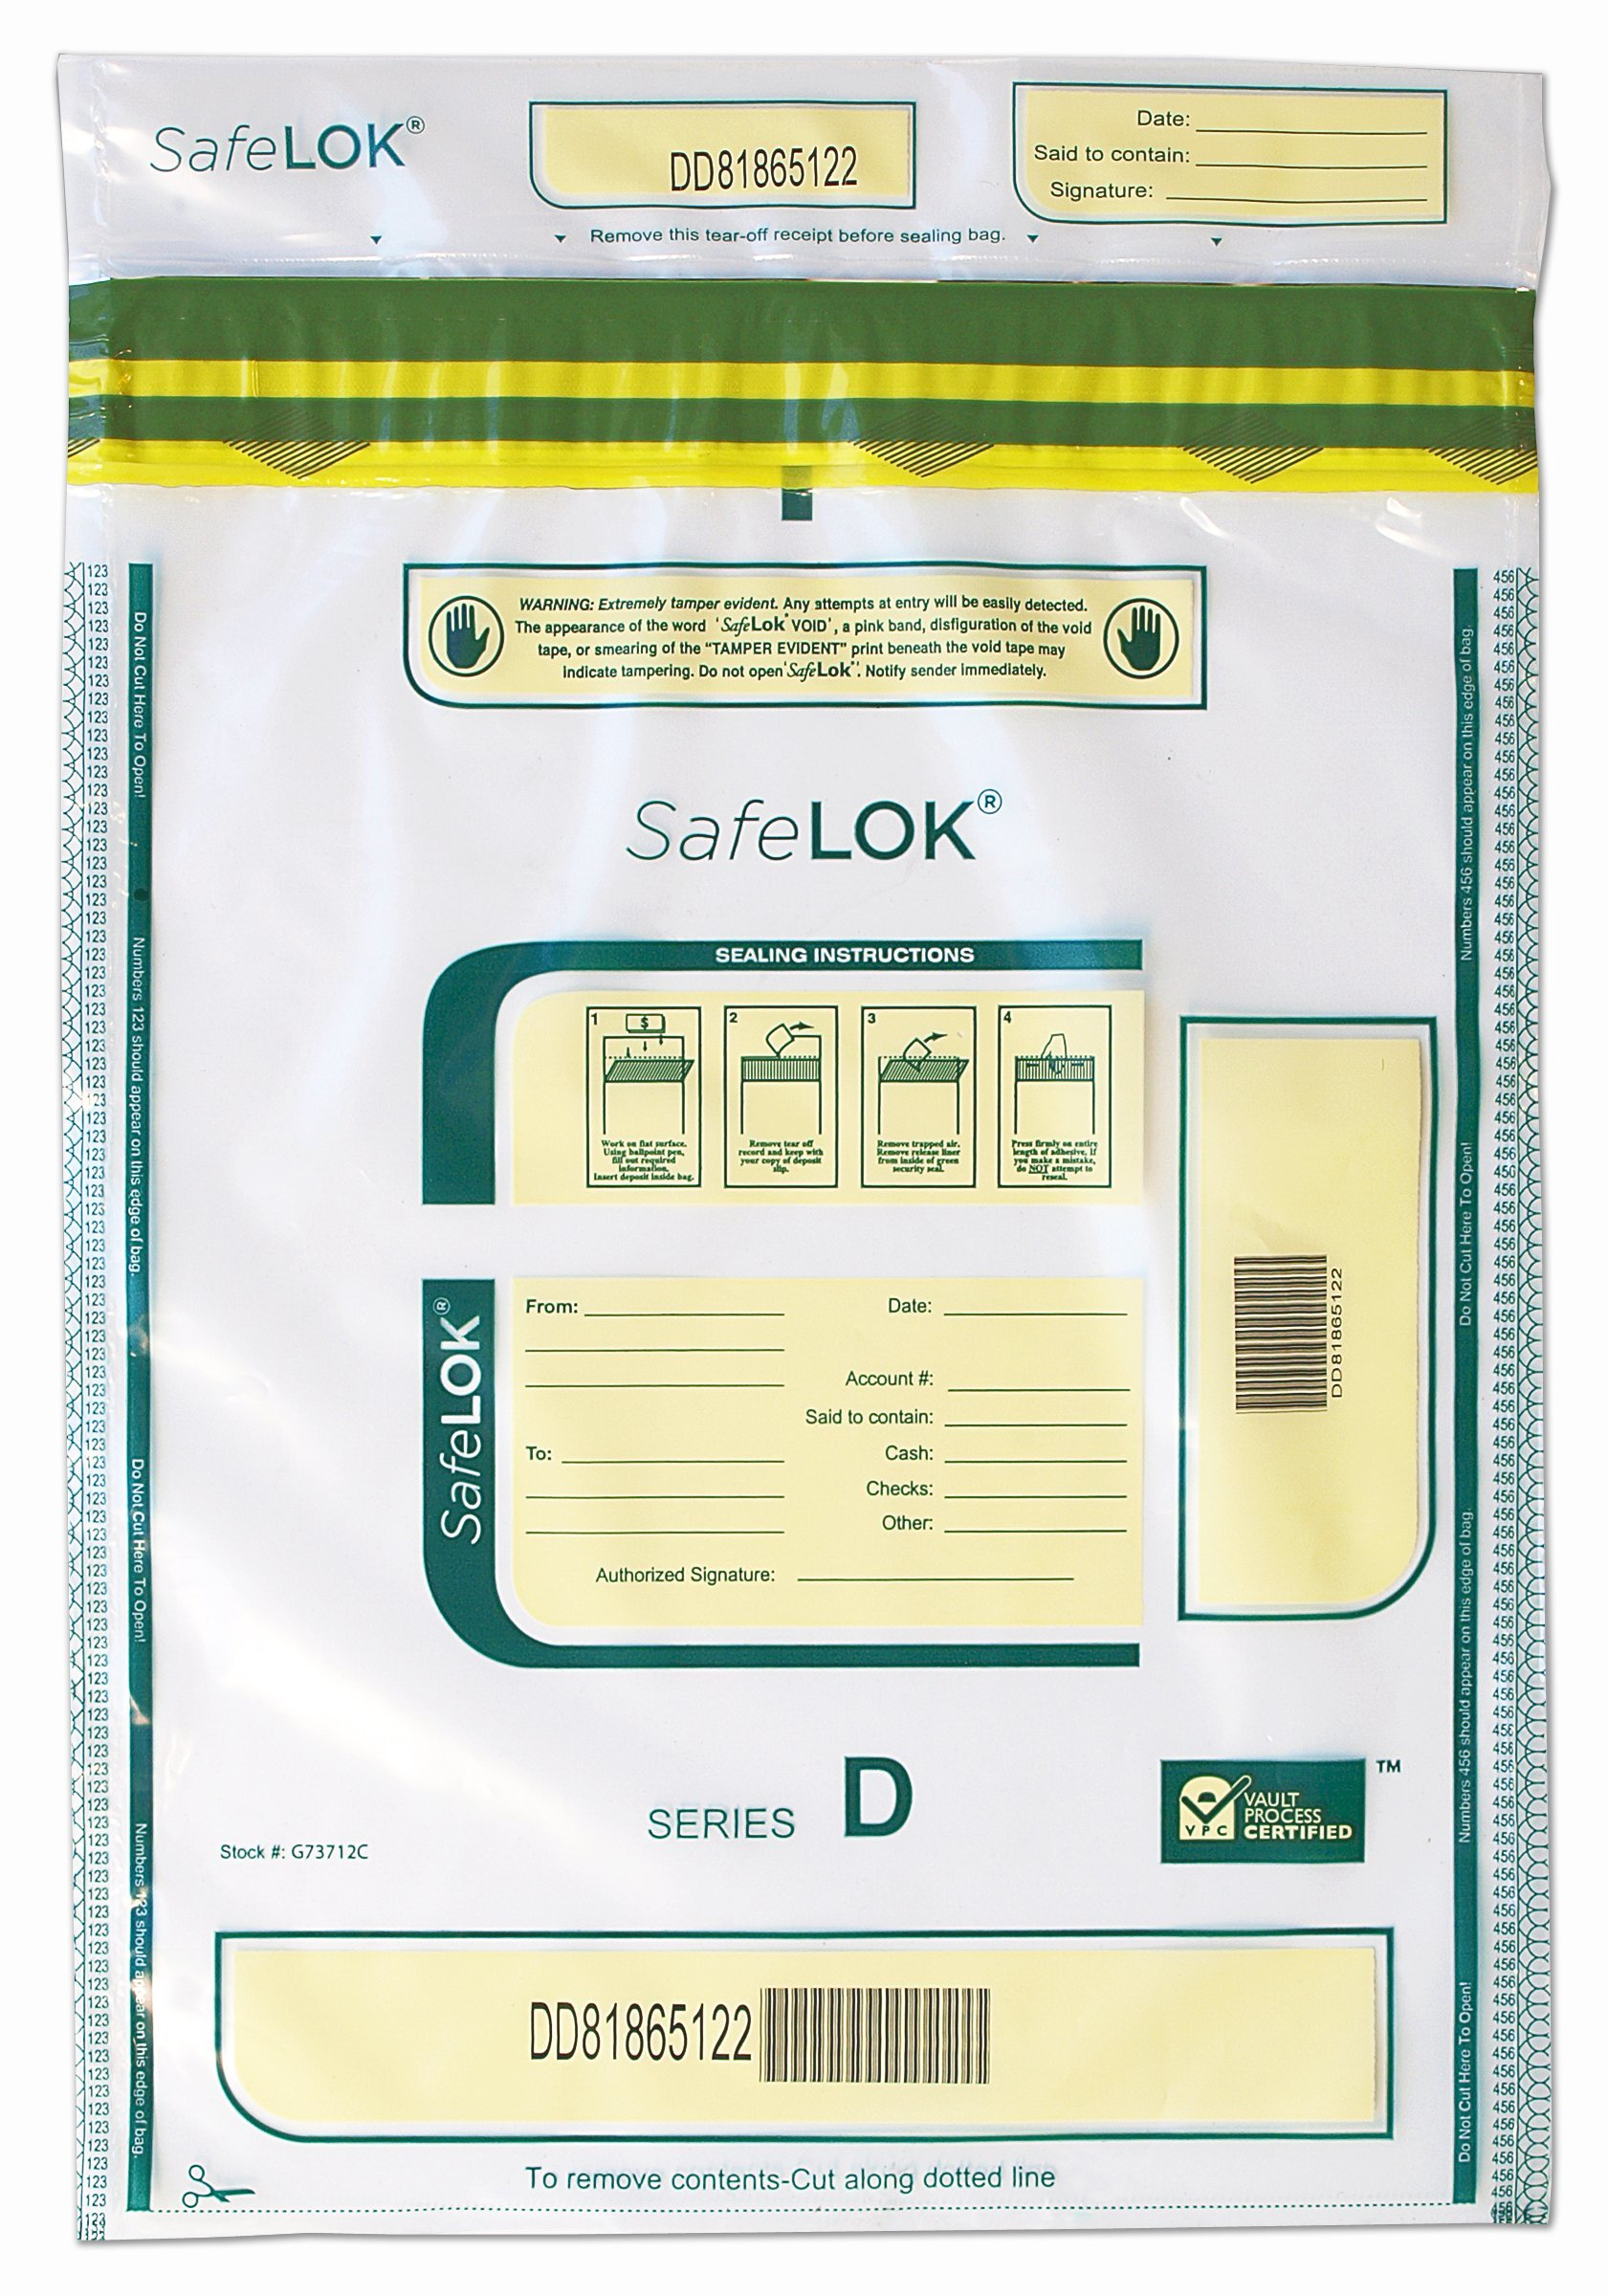 12 X 16 SafeLok, Clear, 100 Deposit Bags by CONTROLTEK